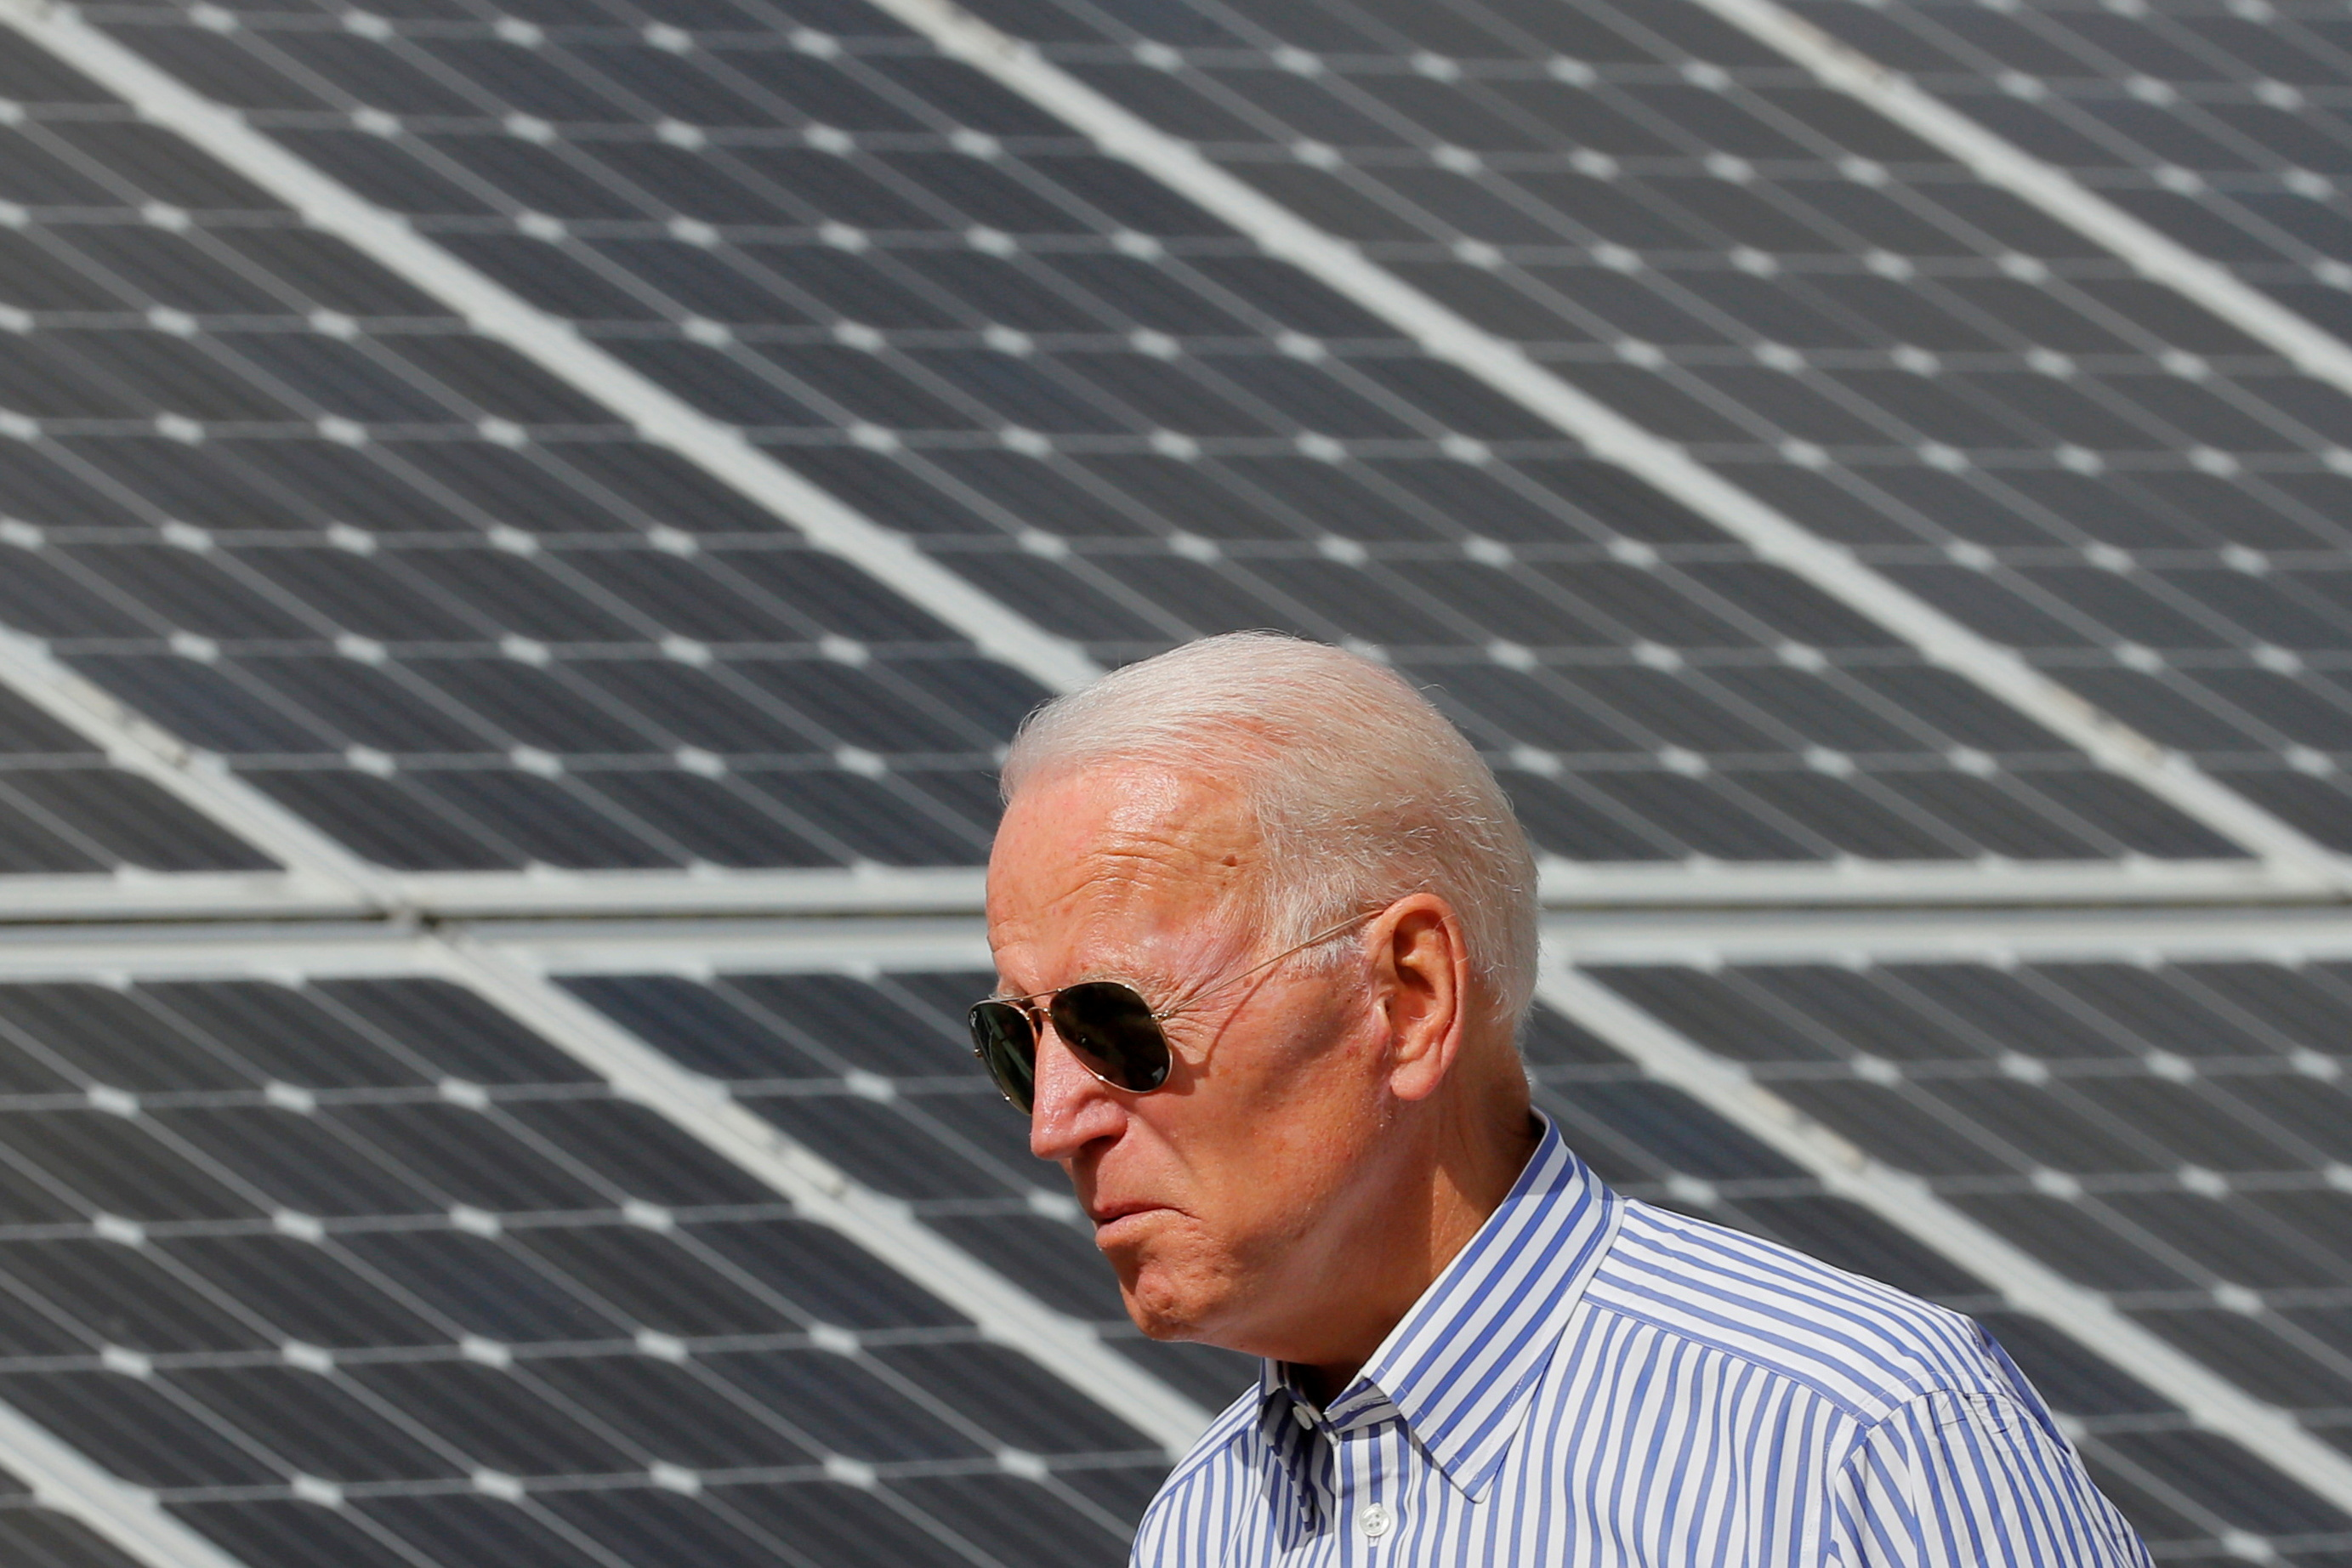 Democratic 2020 U.S. presidential candidate and former Vice President Joe Biden walks past solar panels while touring the Plymouth Area Renewable Energy Initiative in Plymouth, New Hampshire, U.S., June 4, 2019.   REUTERS/Brian Snyder//File Photo